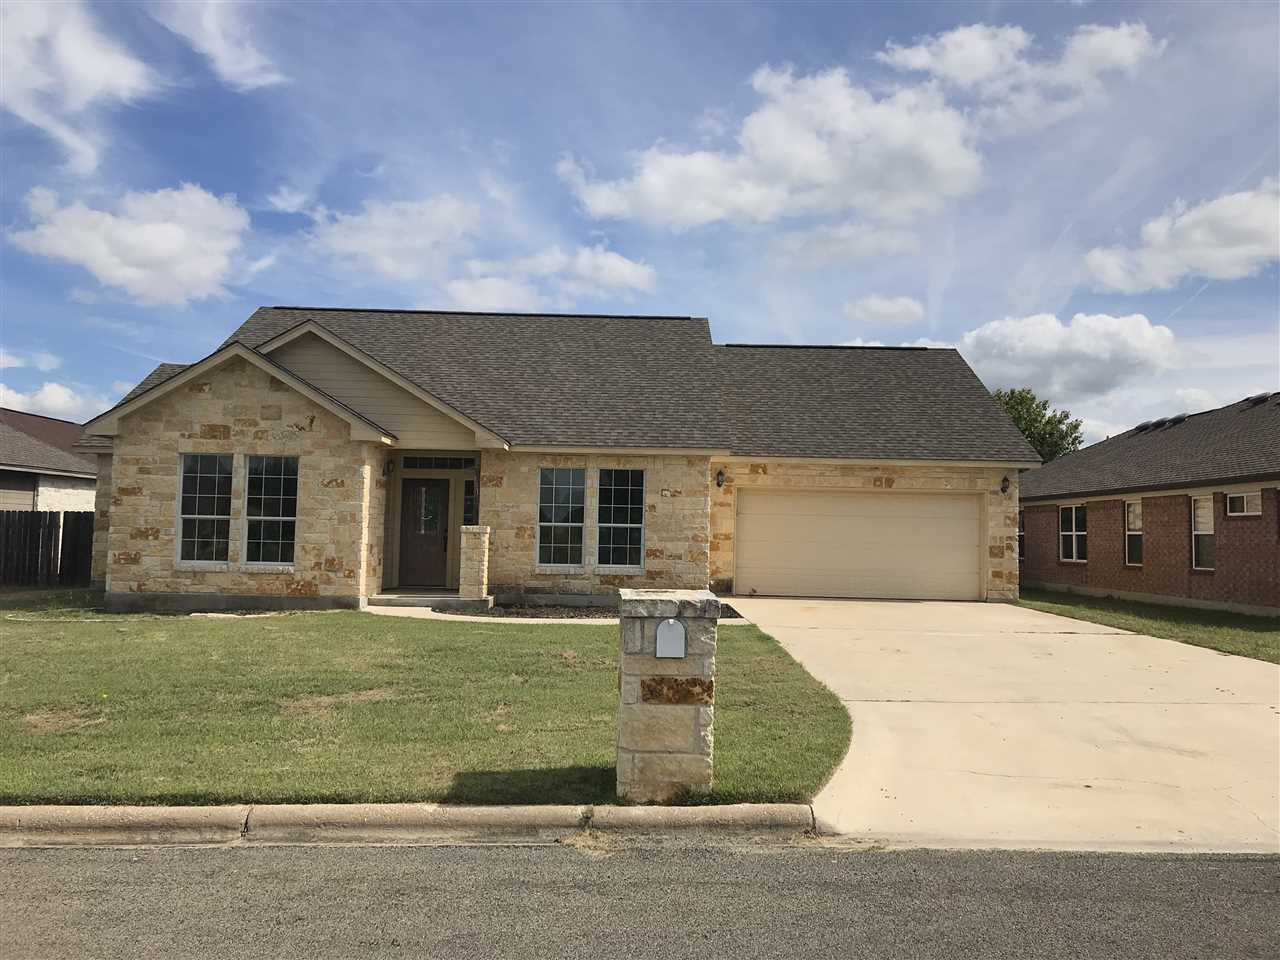 Single Family Home for Sale at 141 Marion Street 141 Marion Street Meadowlakes, Texas 78654 United States